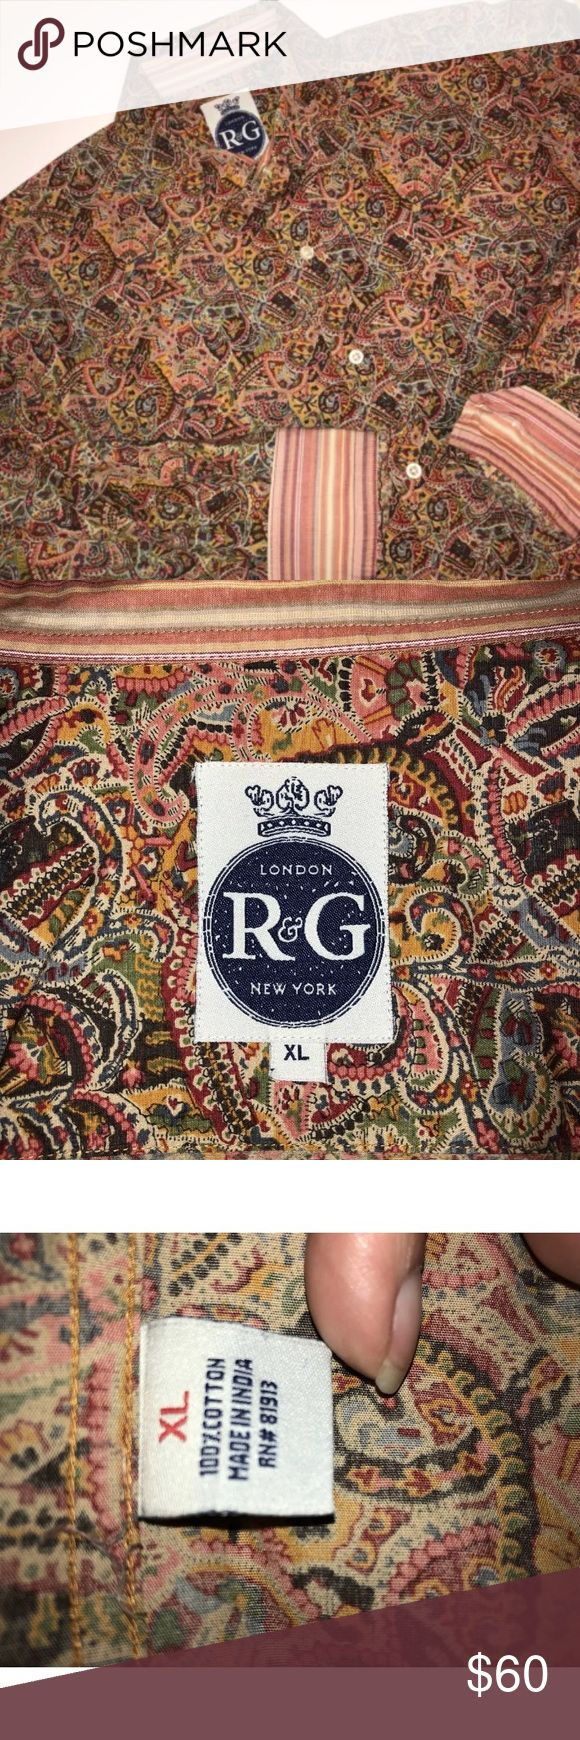 """Robert Graham R & G London New York Shirt XL Robert Graham R & G London New York Shirt Long Sleeve  Button Down  Size XL  Abstract Paisley Red Blue Green Yellow  Stripped Cuffs and Inside Collar 100% Cotton Measurements Neck 17"""" Chest 50"""" Arm Length 26"""" Length 32"""" Excellent condition! Just dry cleaned! Robert Graham Shirts Dress Shirts"""